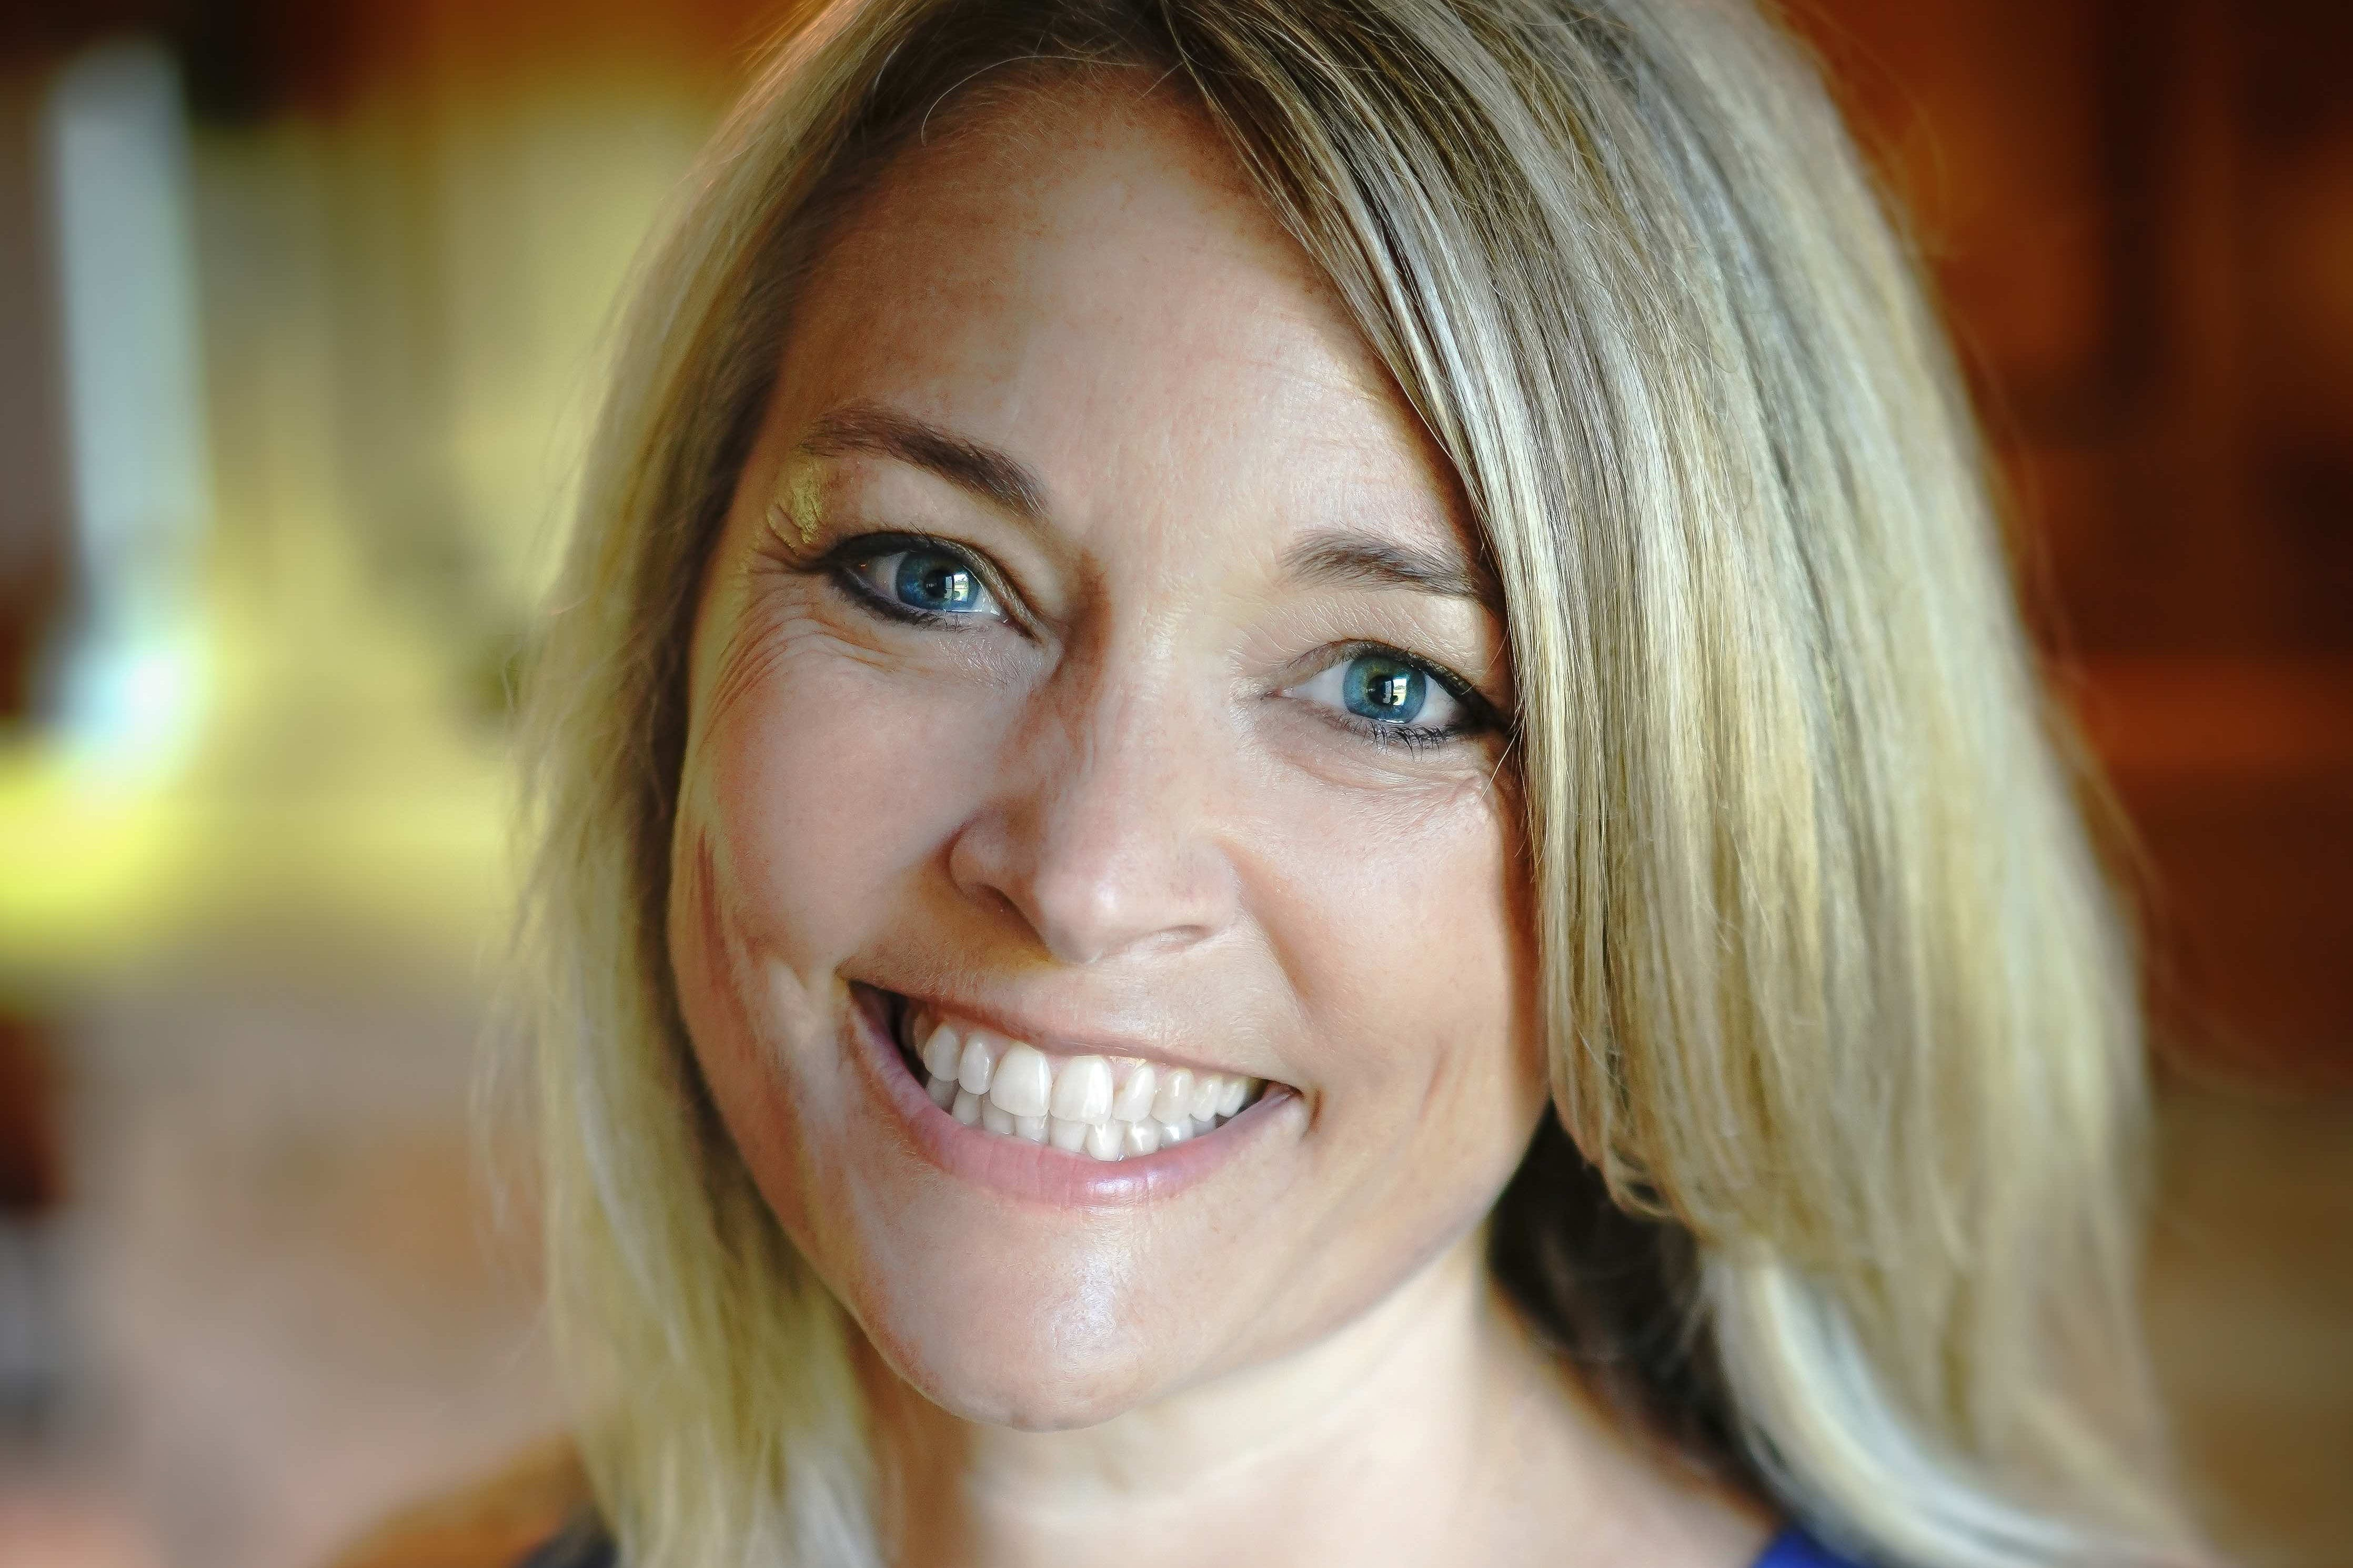 Michlyn Newman '93, Mahtomedi Public School's Teacher of the Year, credits her faith for leading her into teaching and keeping her where she belongs: teaching kindergarten.